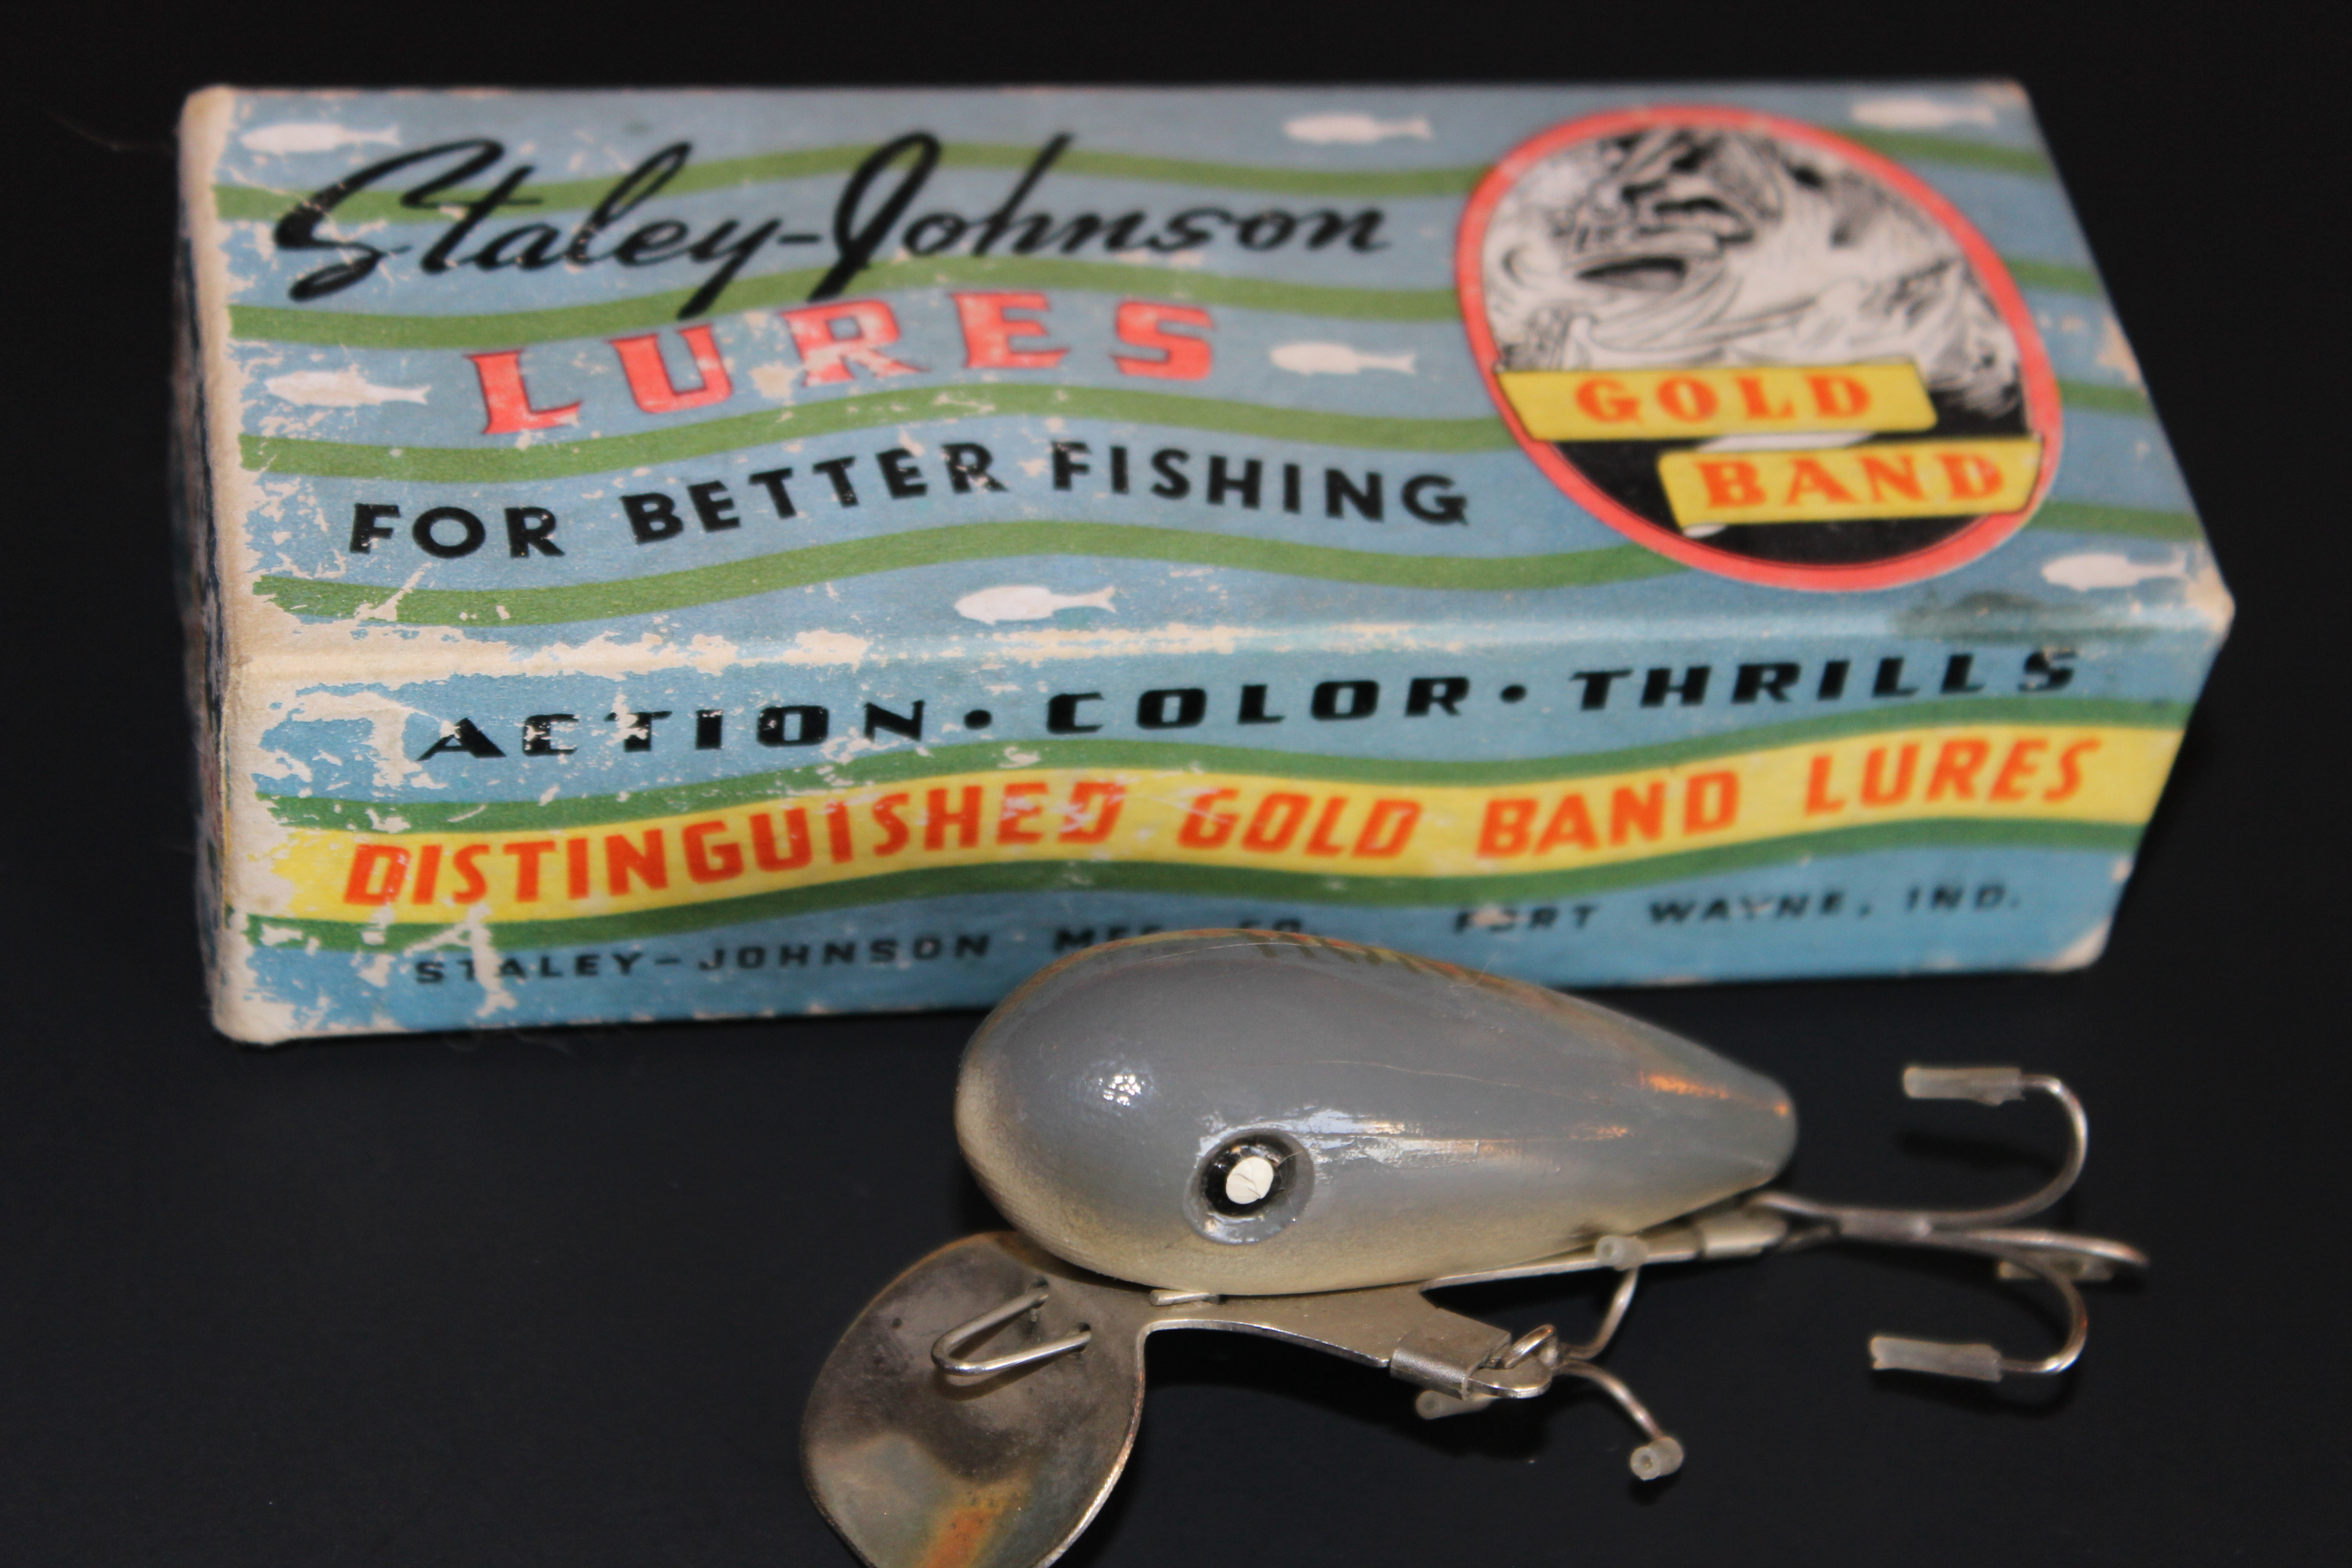 staley-johnson lures – old indiana lures, Hard Baits